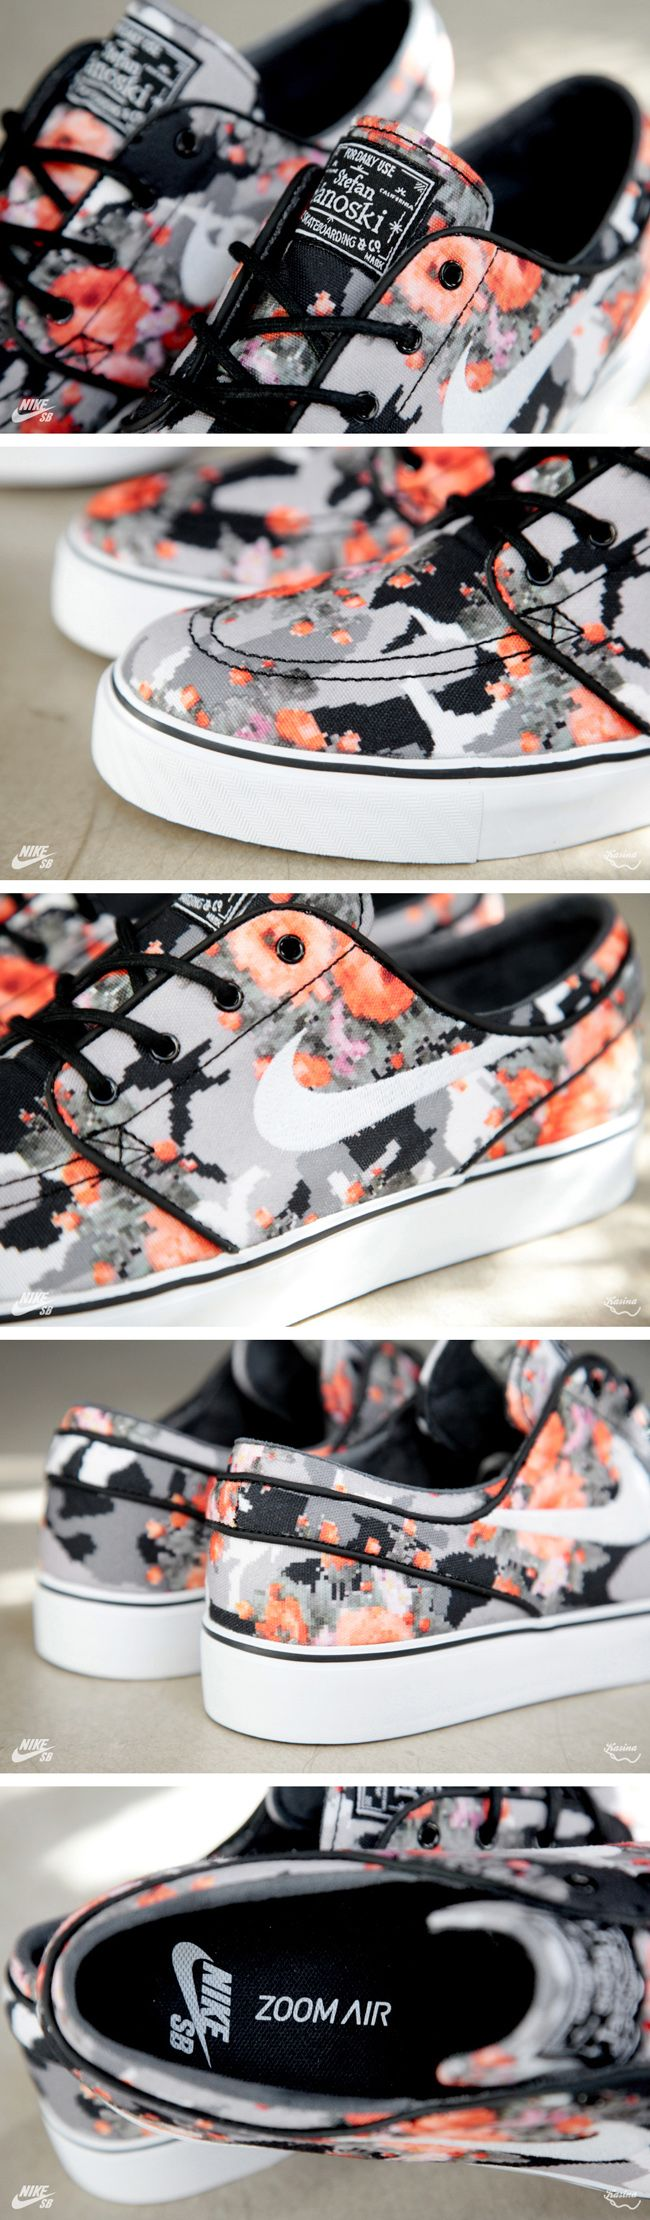 Super Cheap!est, Sports shoes outlet ,Press picture link get it immediately! 3 days Limited!!Get it immediately!